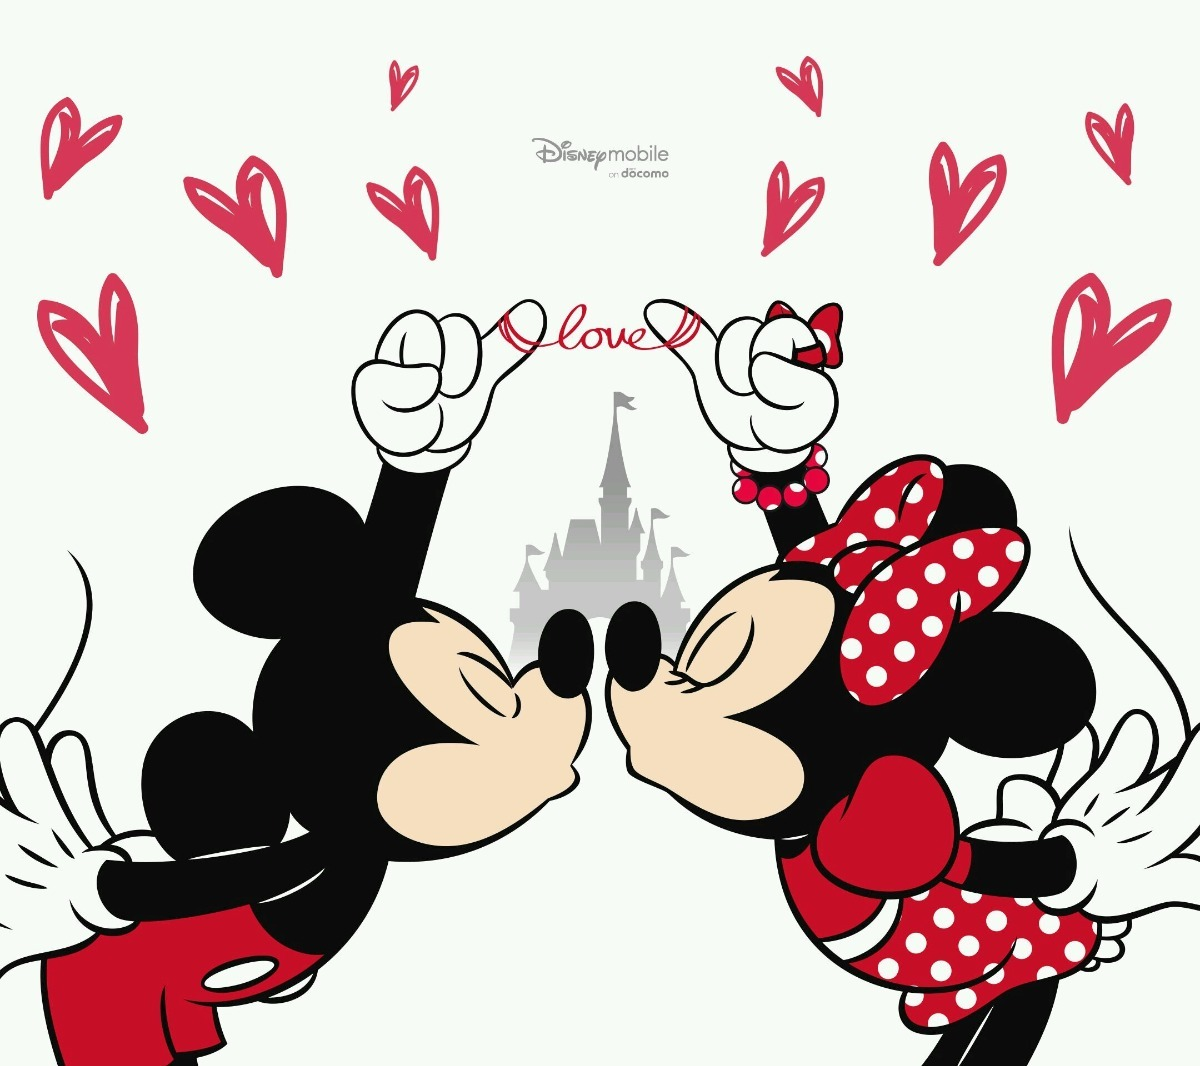 Papel de parede auto adesivo decora o mickey e minnie 2m for Papel de pared negro